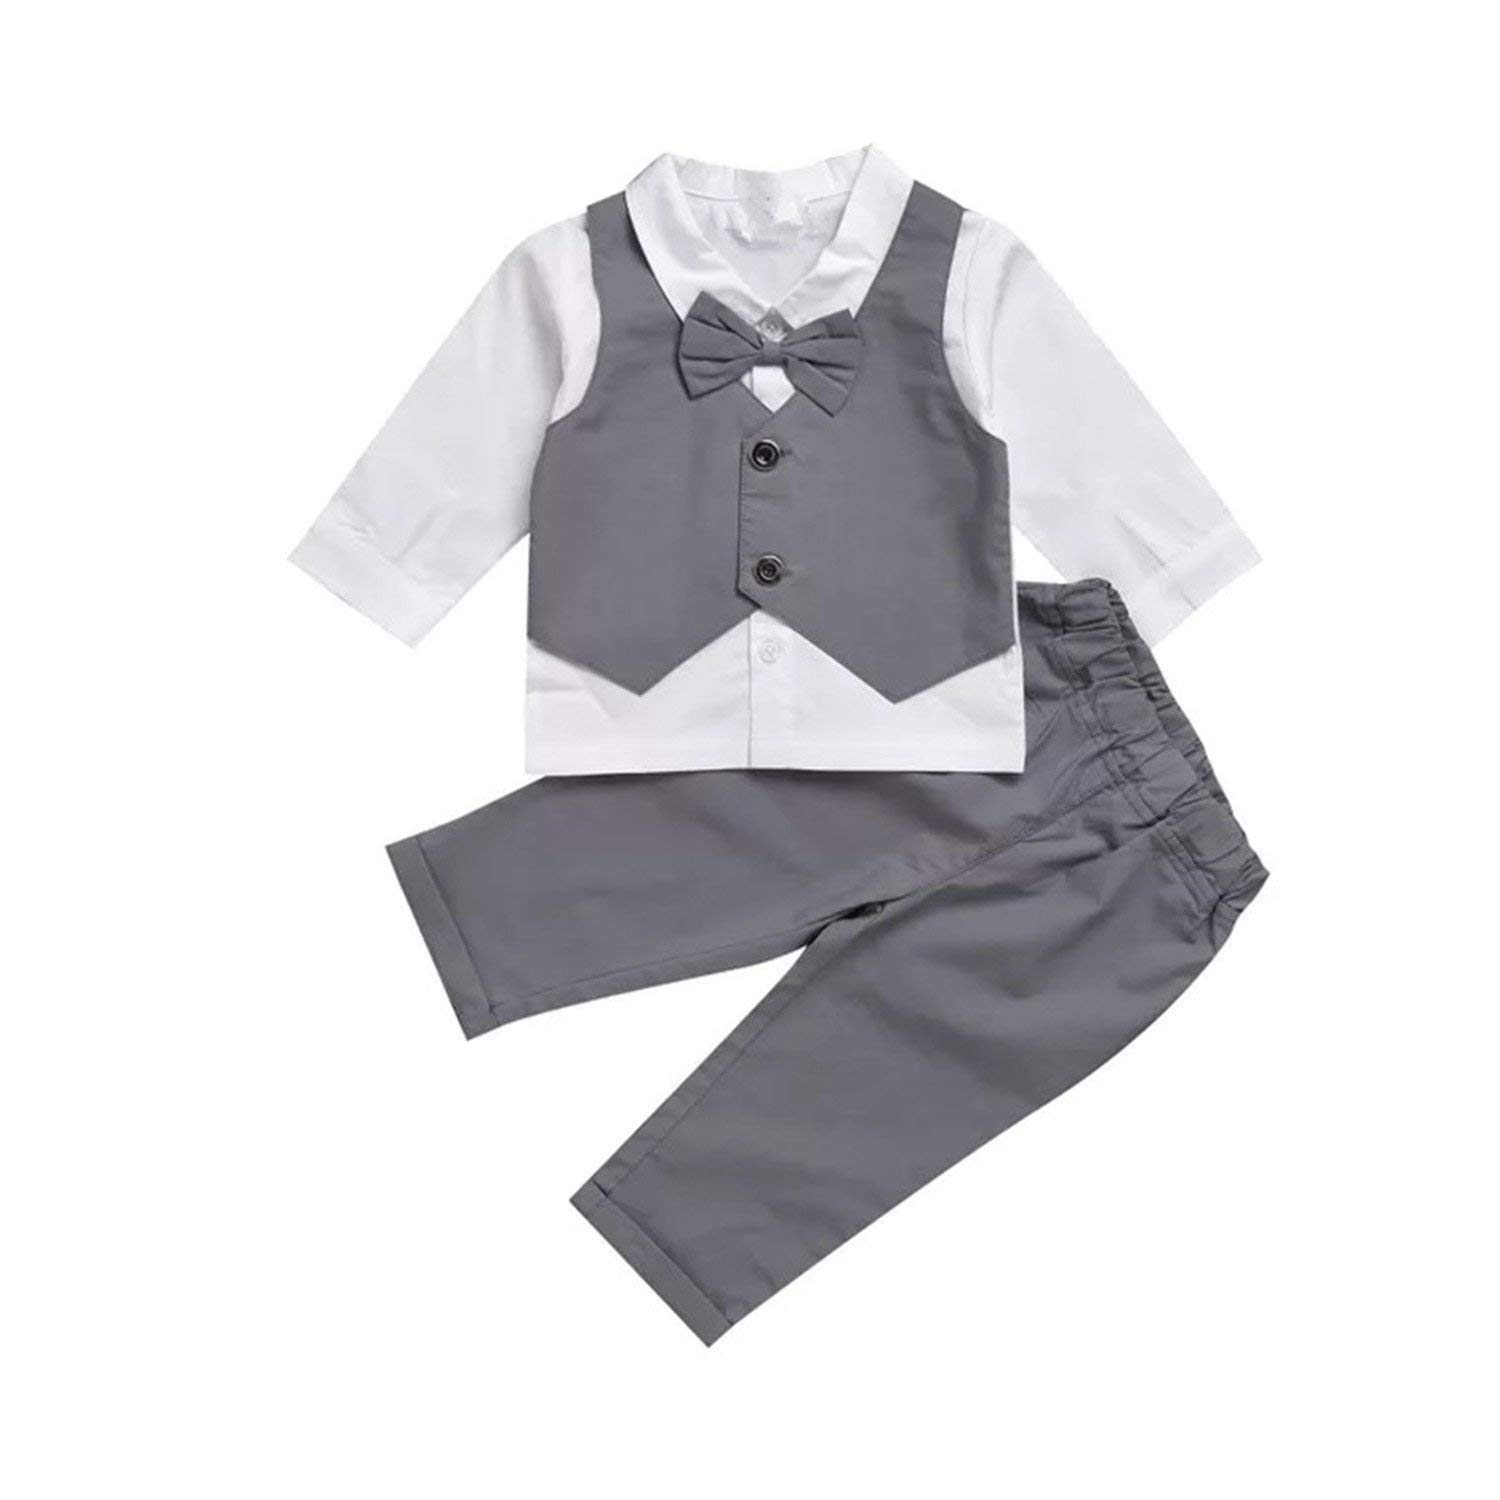 Gubabycci Infant and Toddler Baby Boy Gentleman 2pcs Long Sleeves Formal Party Wedding Suits Outfits